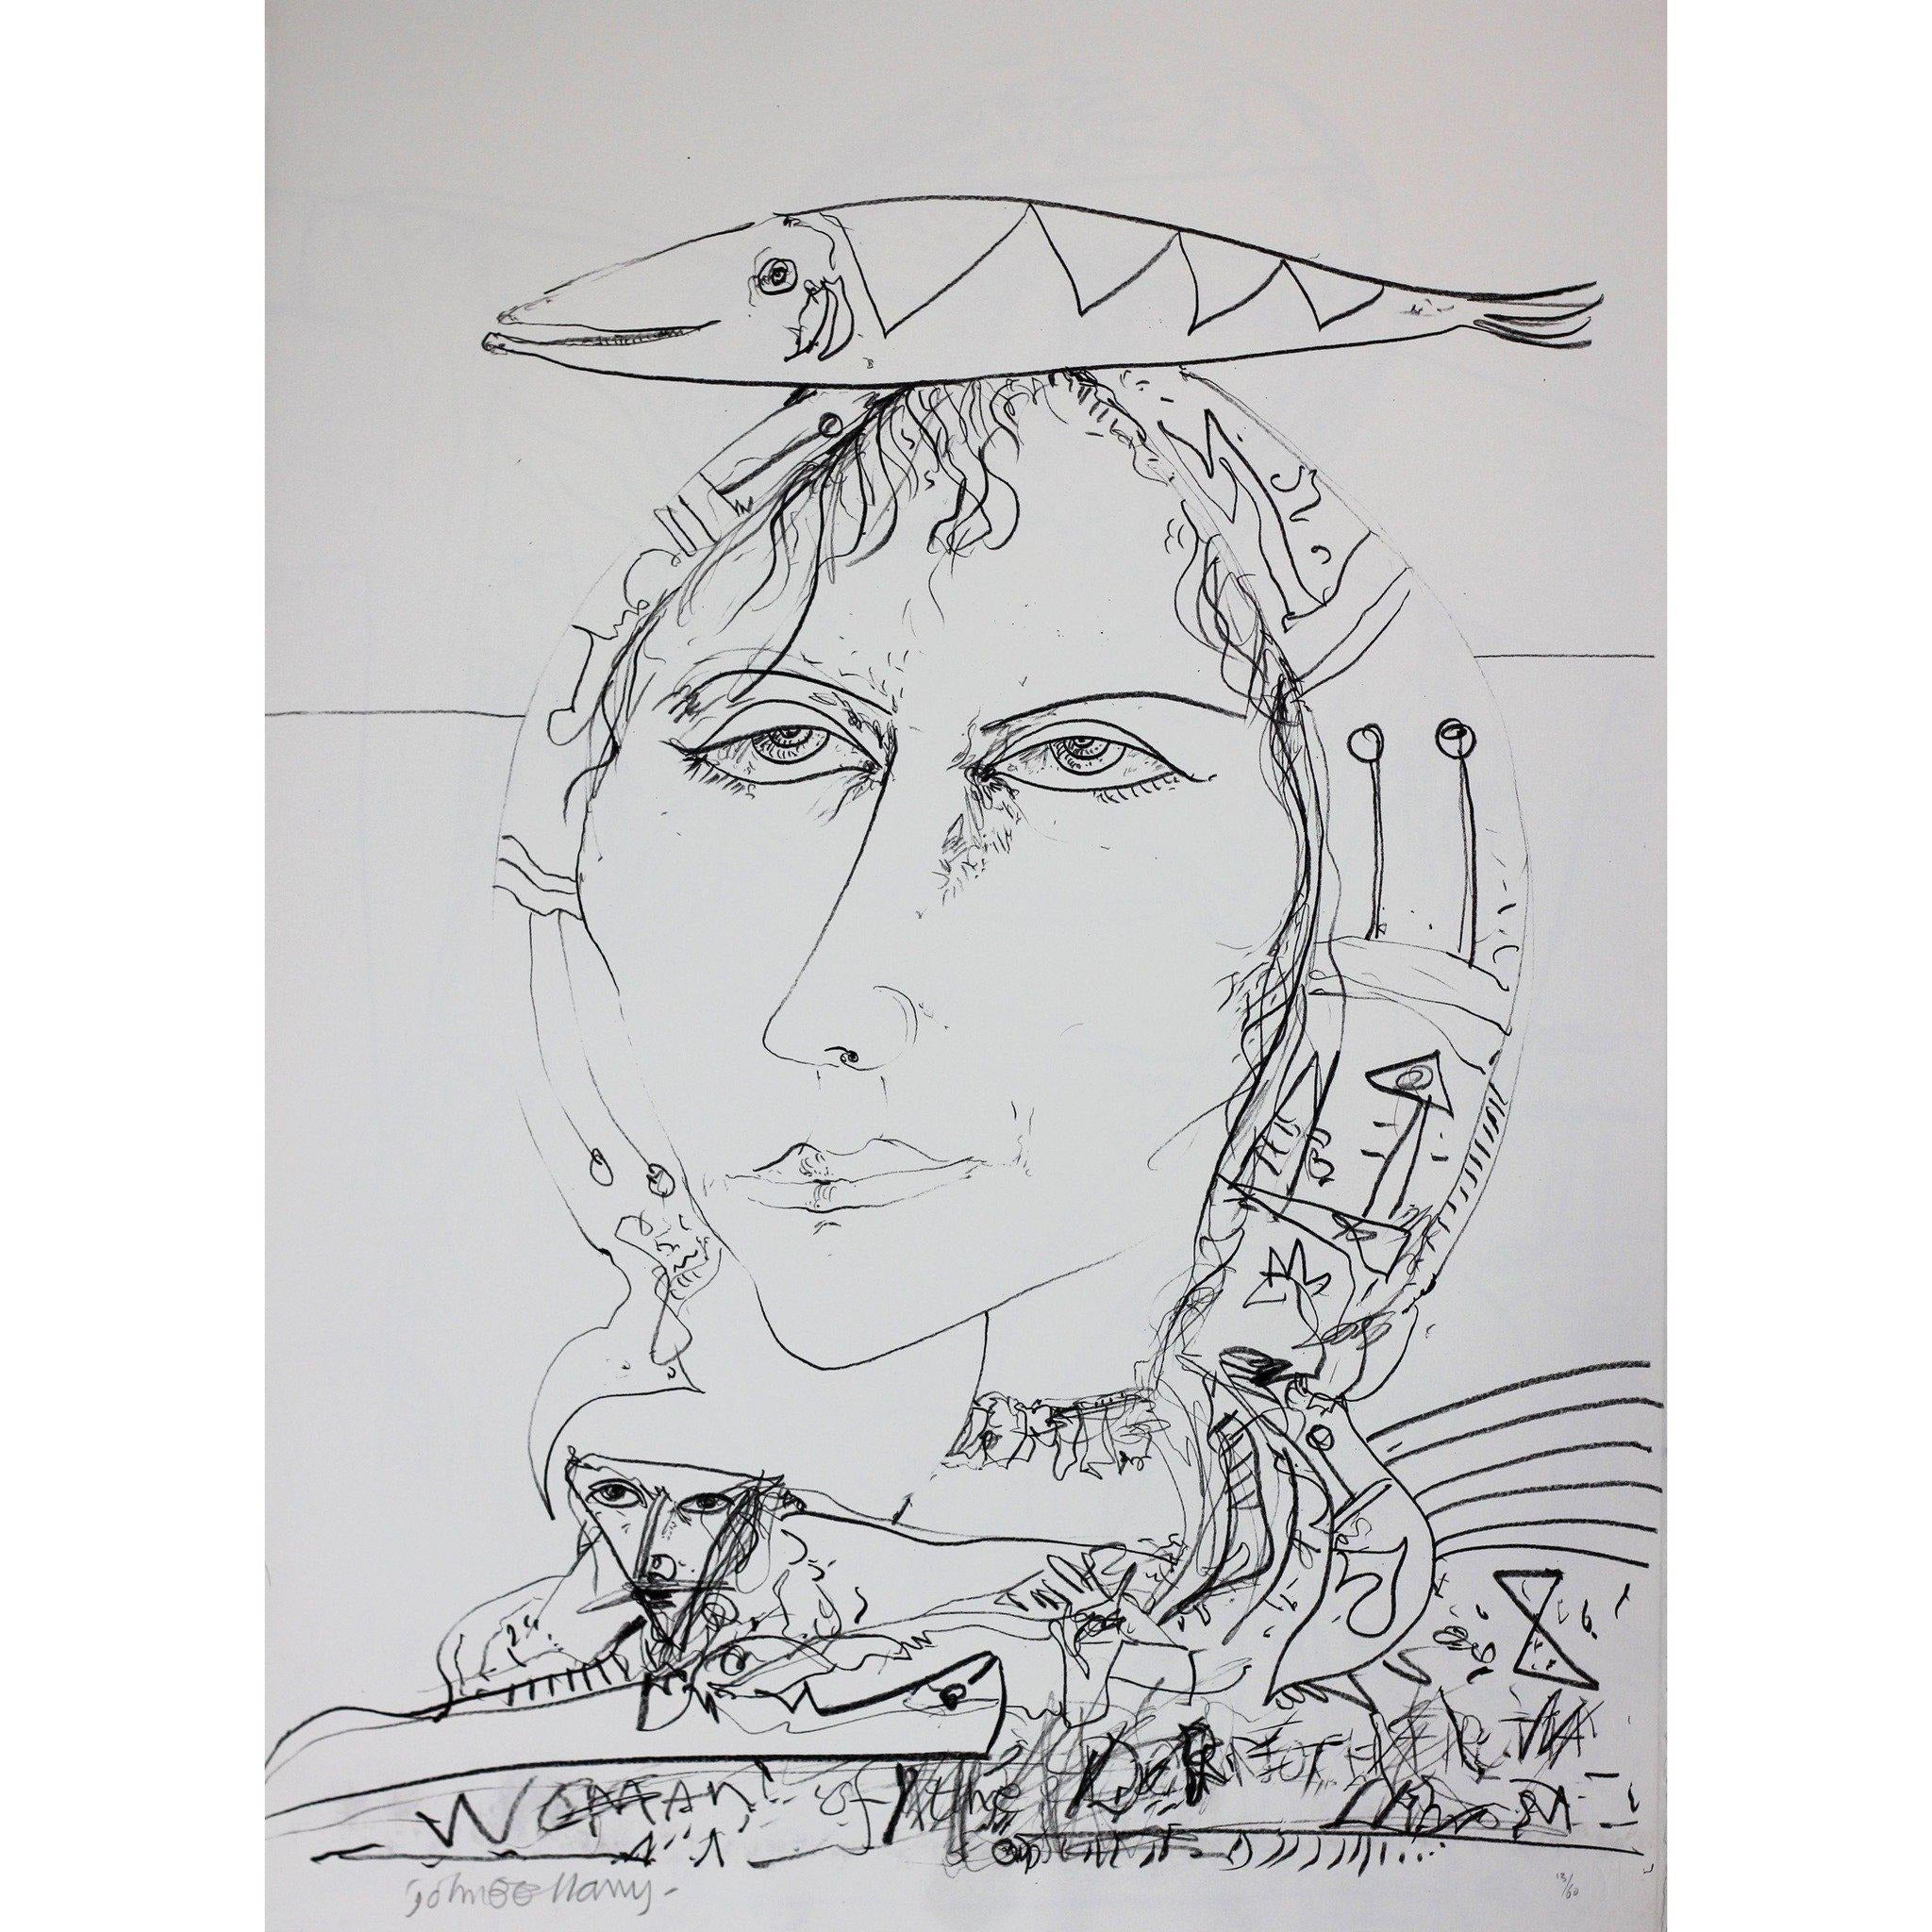 John Bellany Signed Ltd Ed Lithograph Print - Call of the sea suite 8